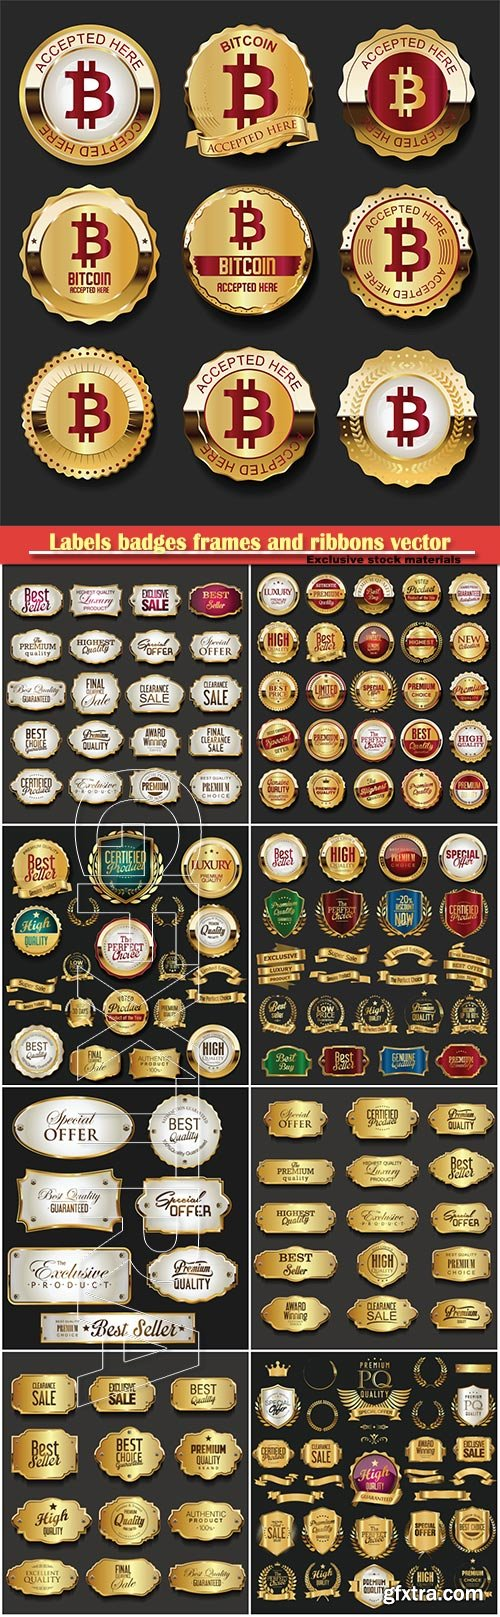 Labels badges frames and ribbons vector collection, bitcoin gold labels